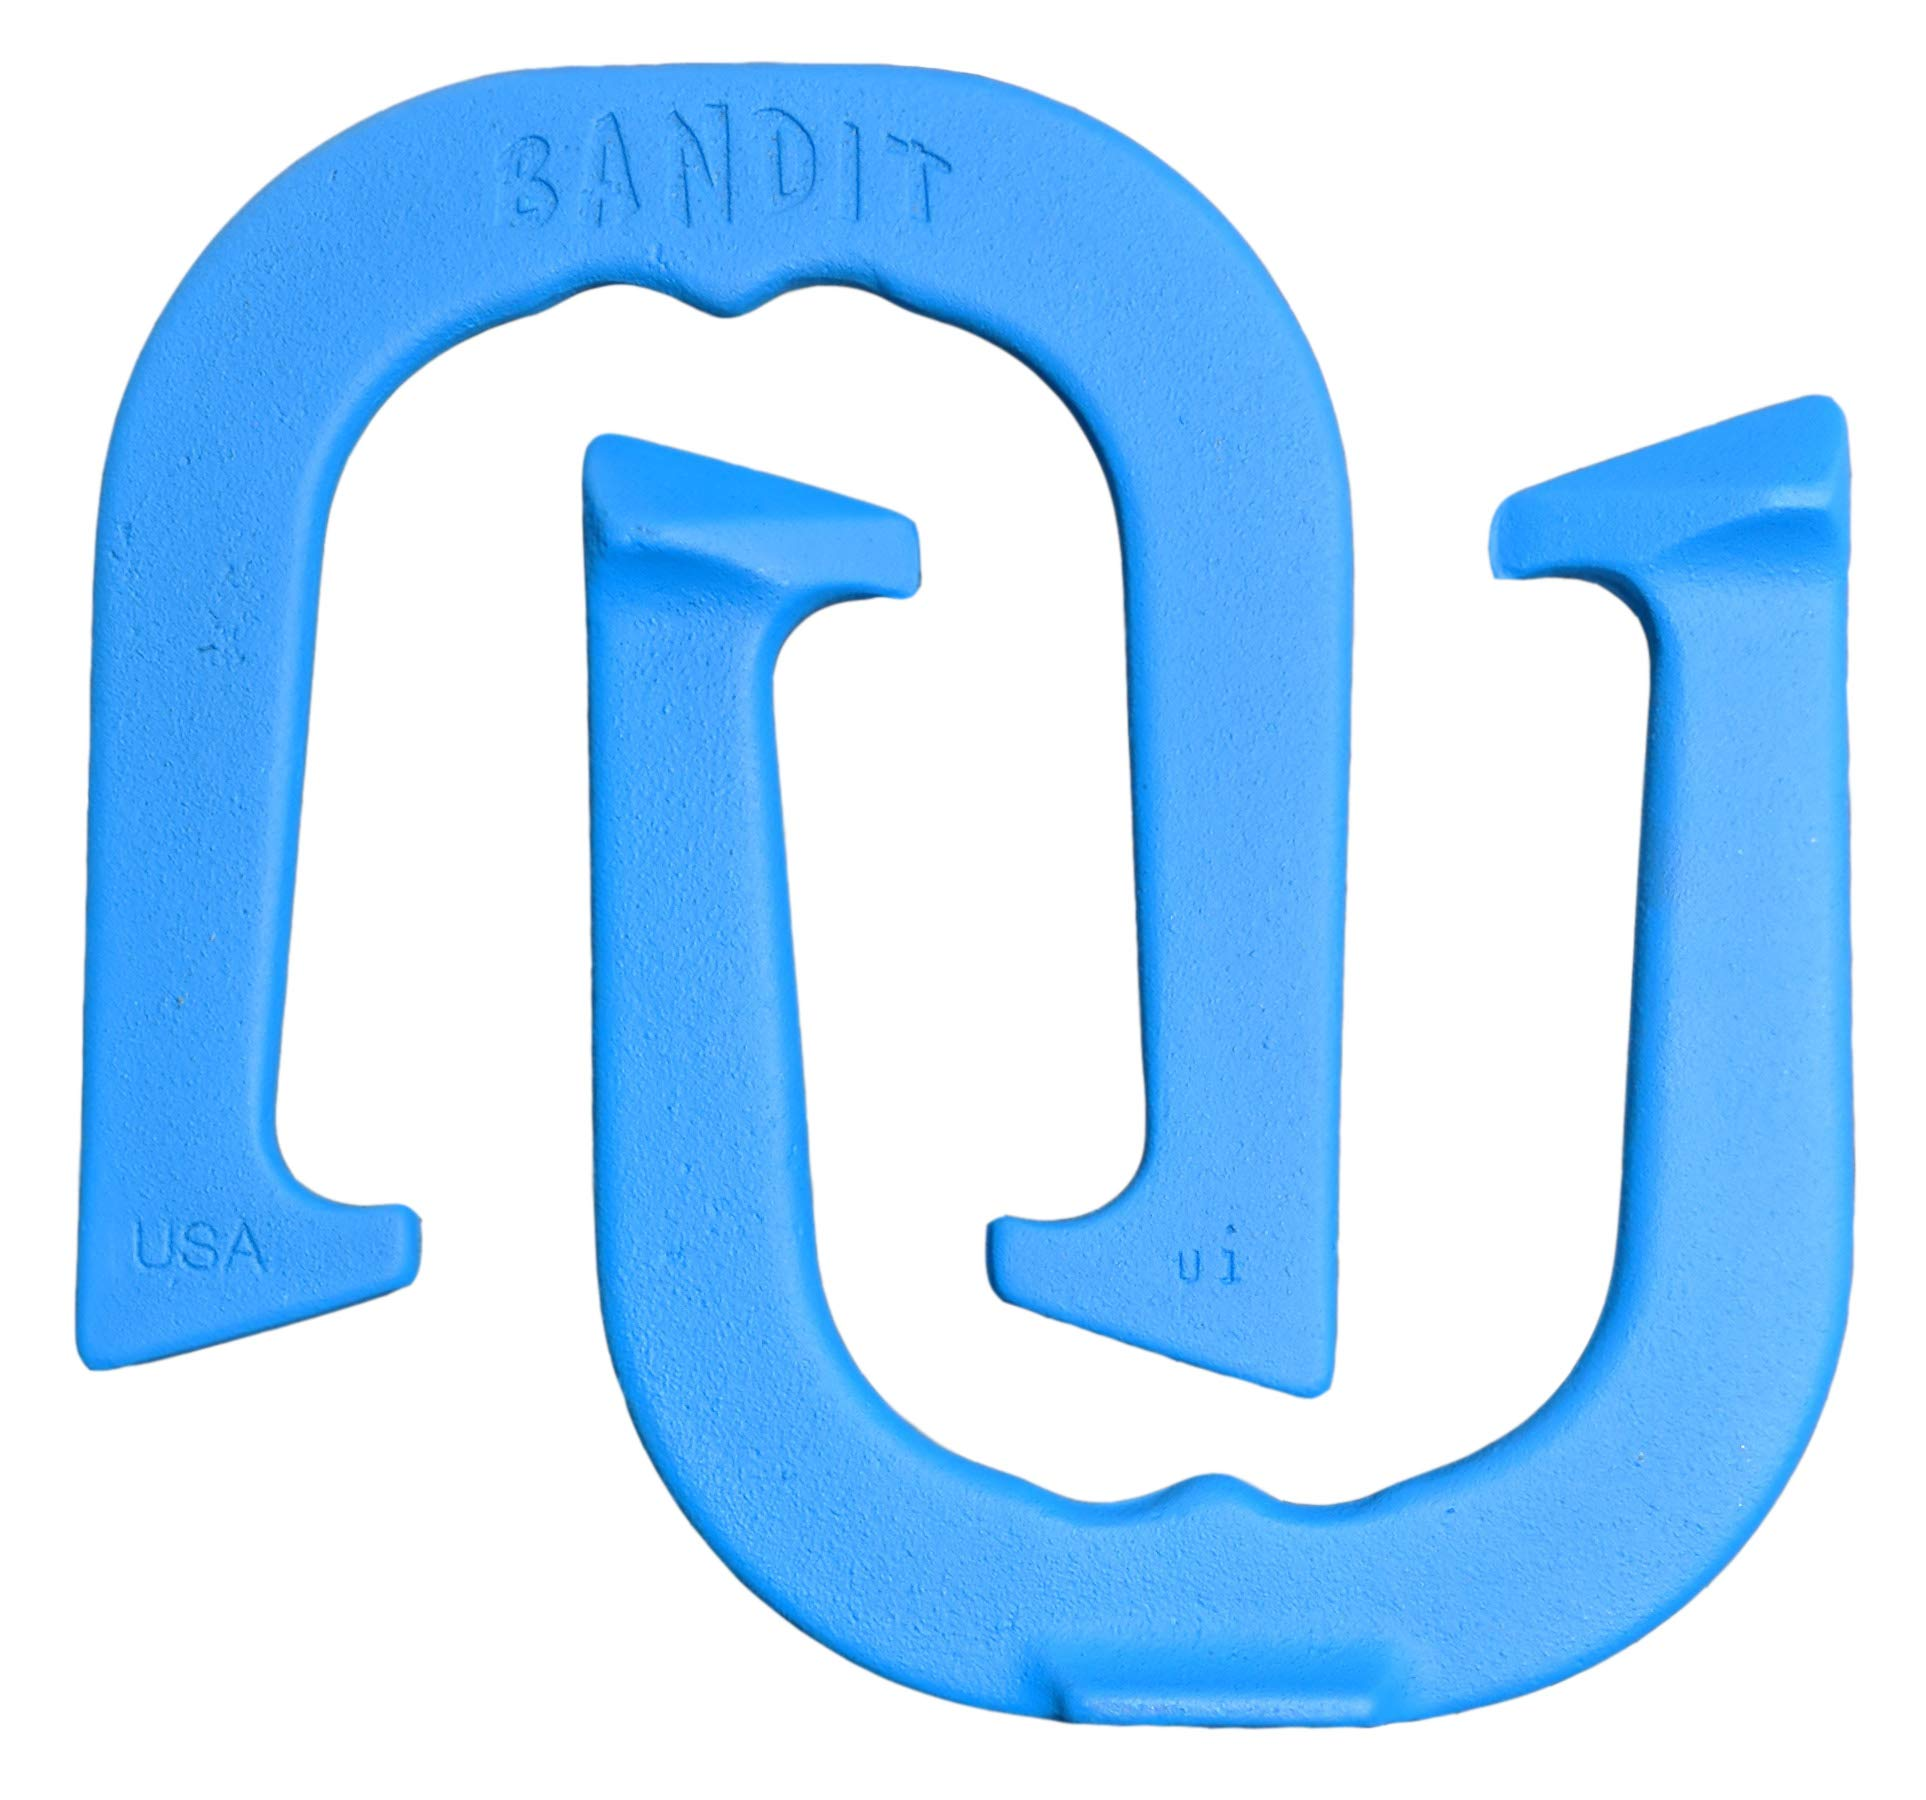 Bandit Professional Pitching Horseshoes- Made in USA! (Blue- Single Pair (2 Shoes))